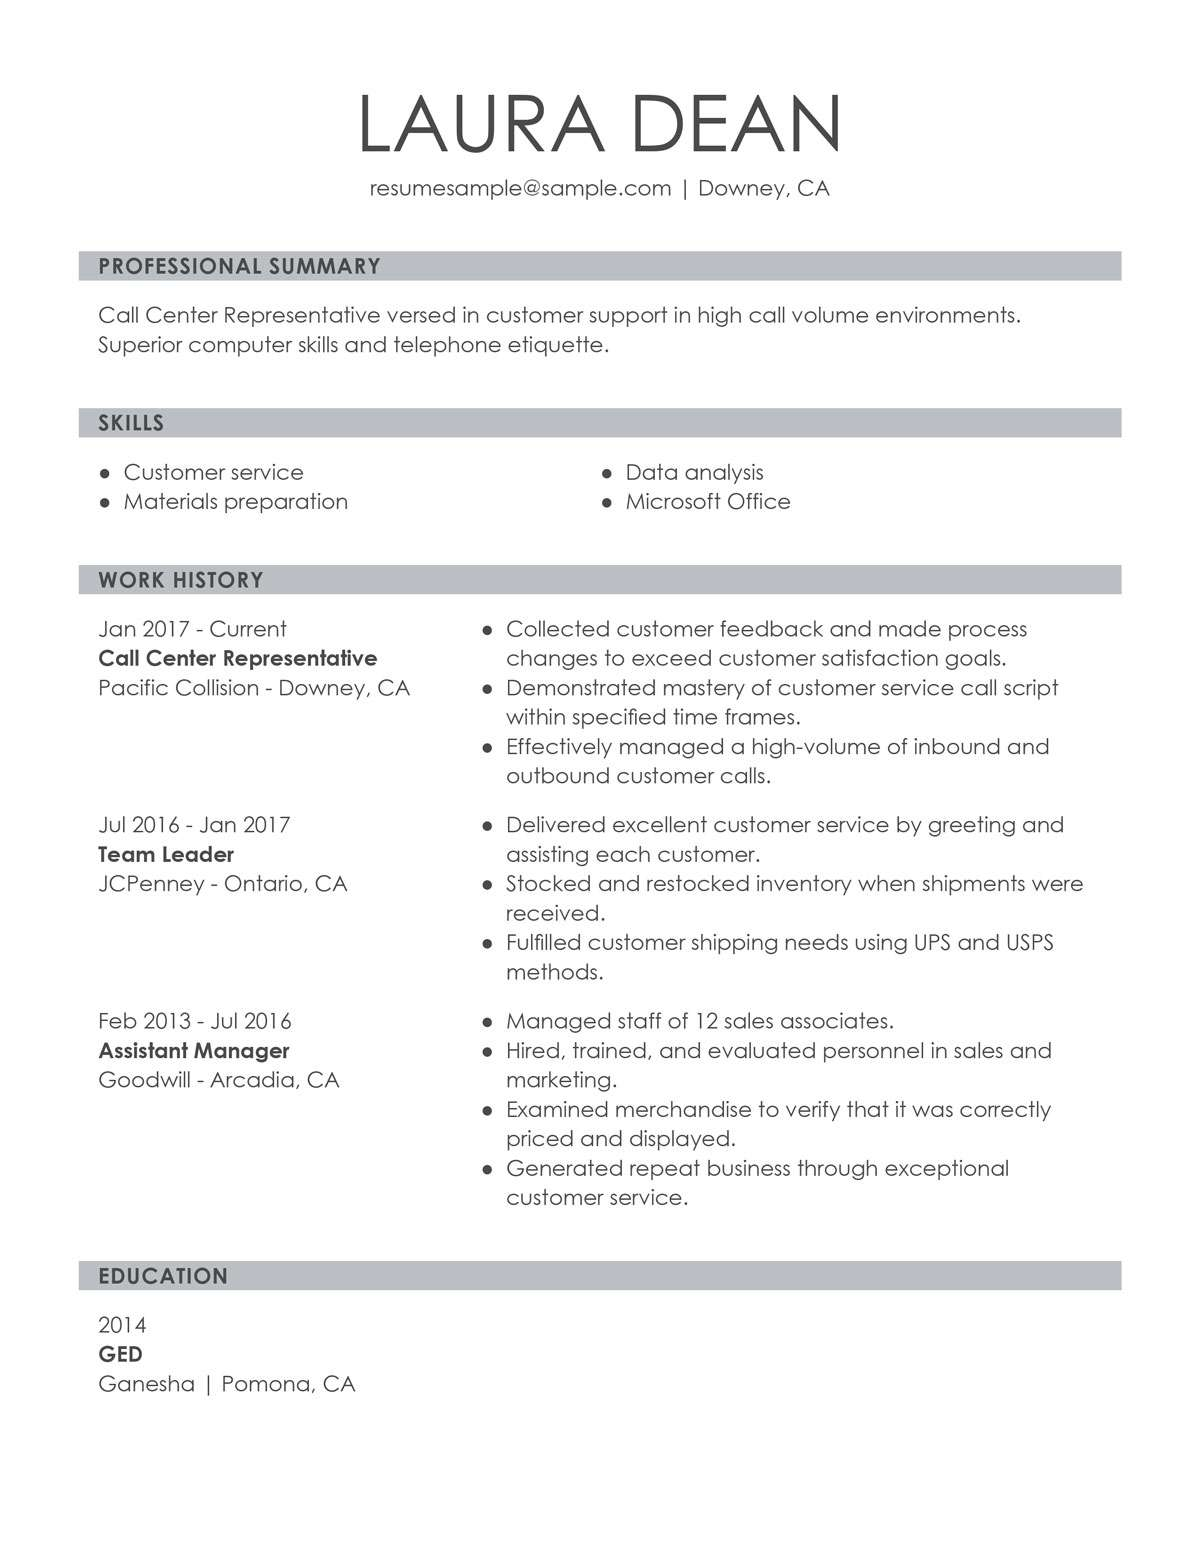 customize our customer representative resume example qualifications service call center Resume Resume Qualifications Customer Service